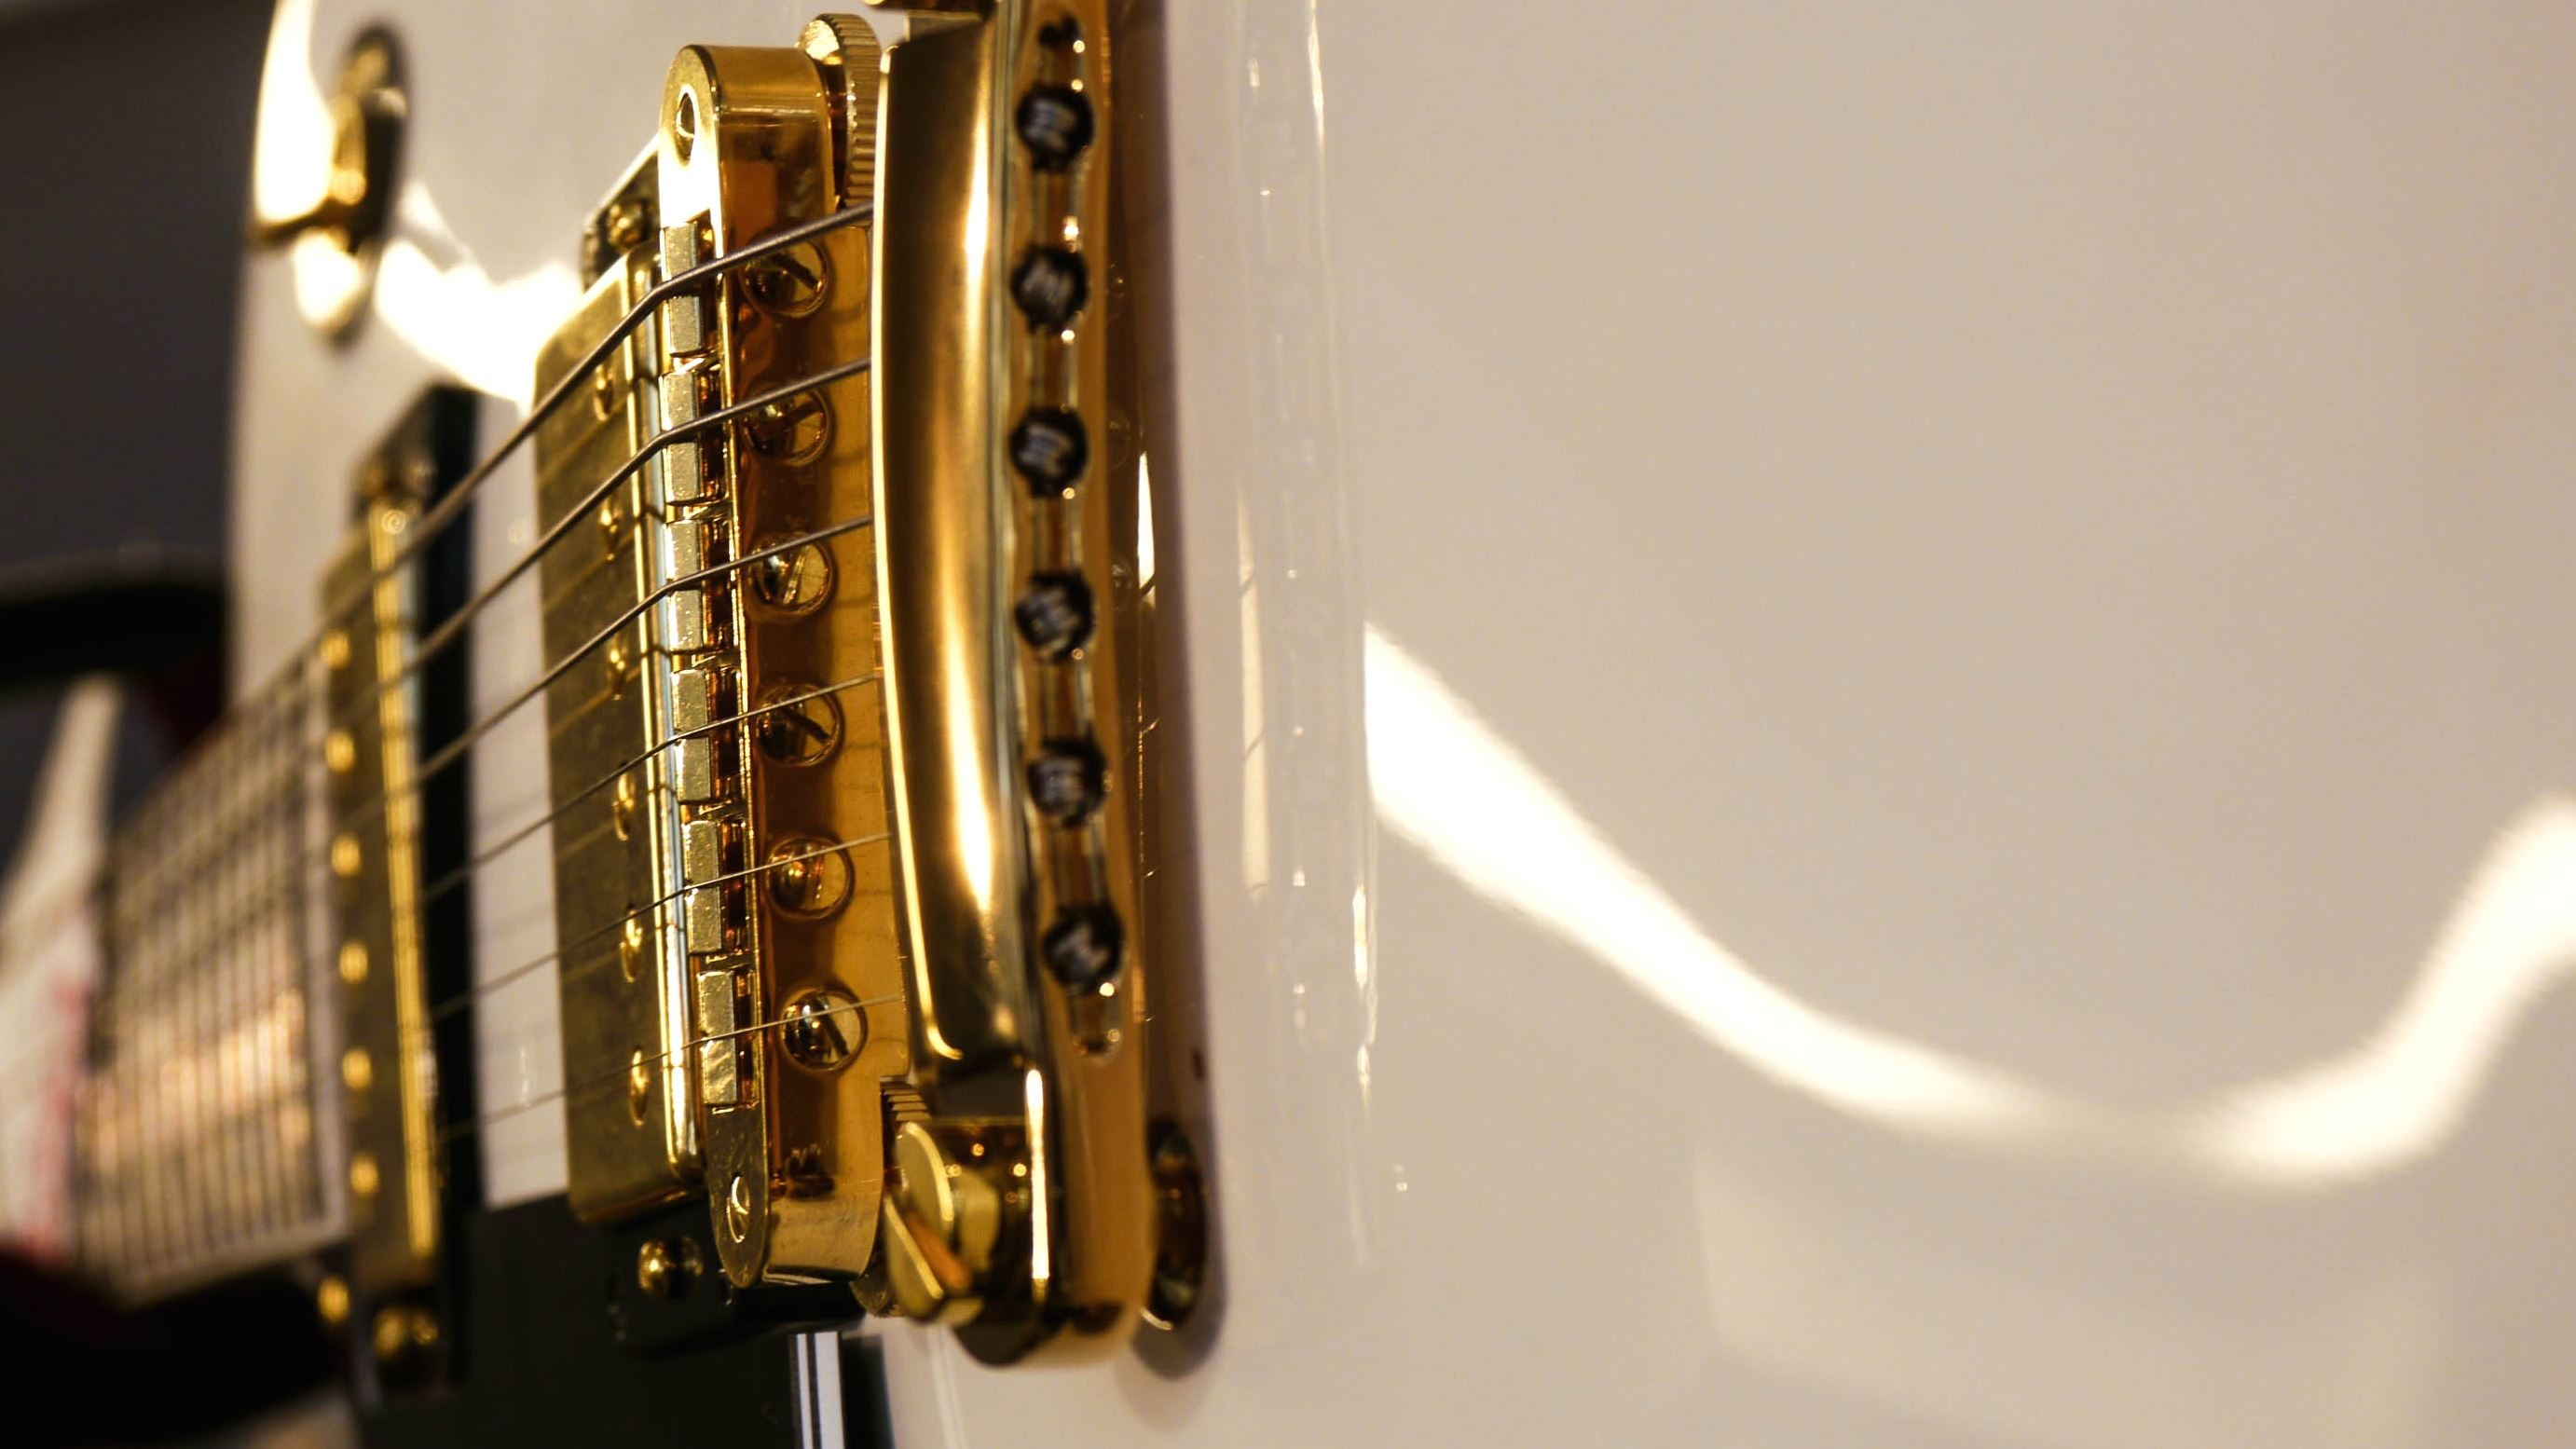 Free Picture Guitar Brass Instrument Wire Electricity How To An Electric Technology Art